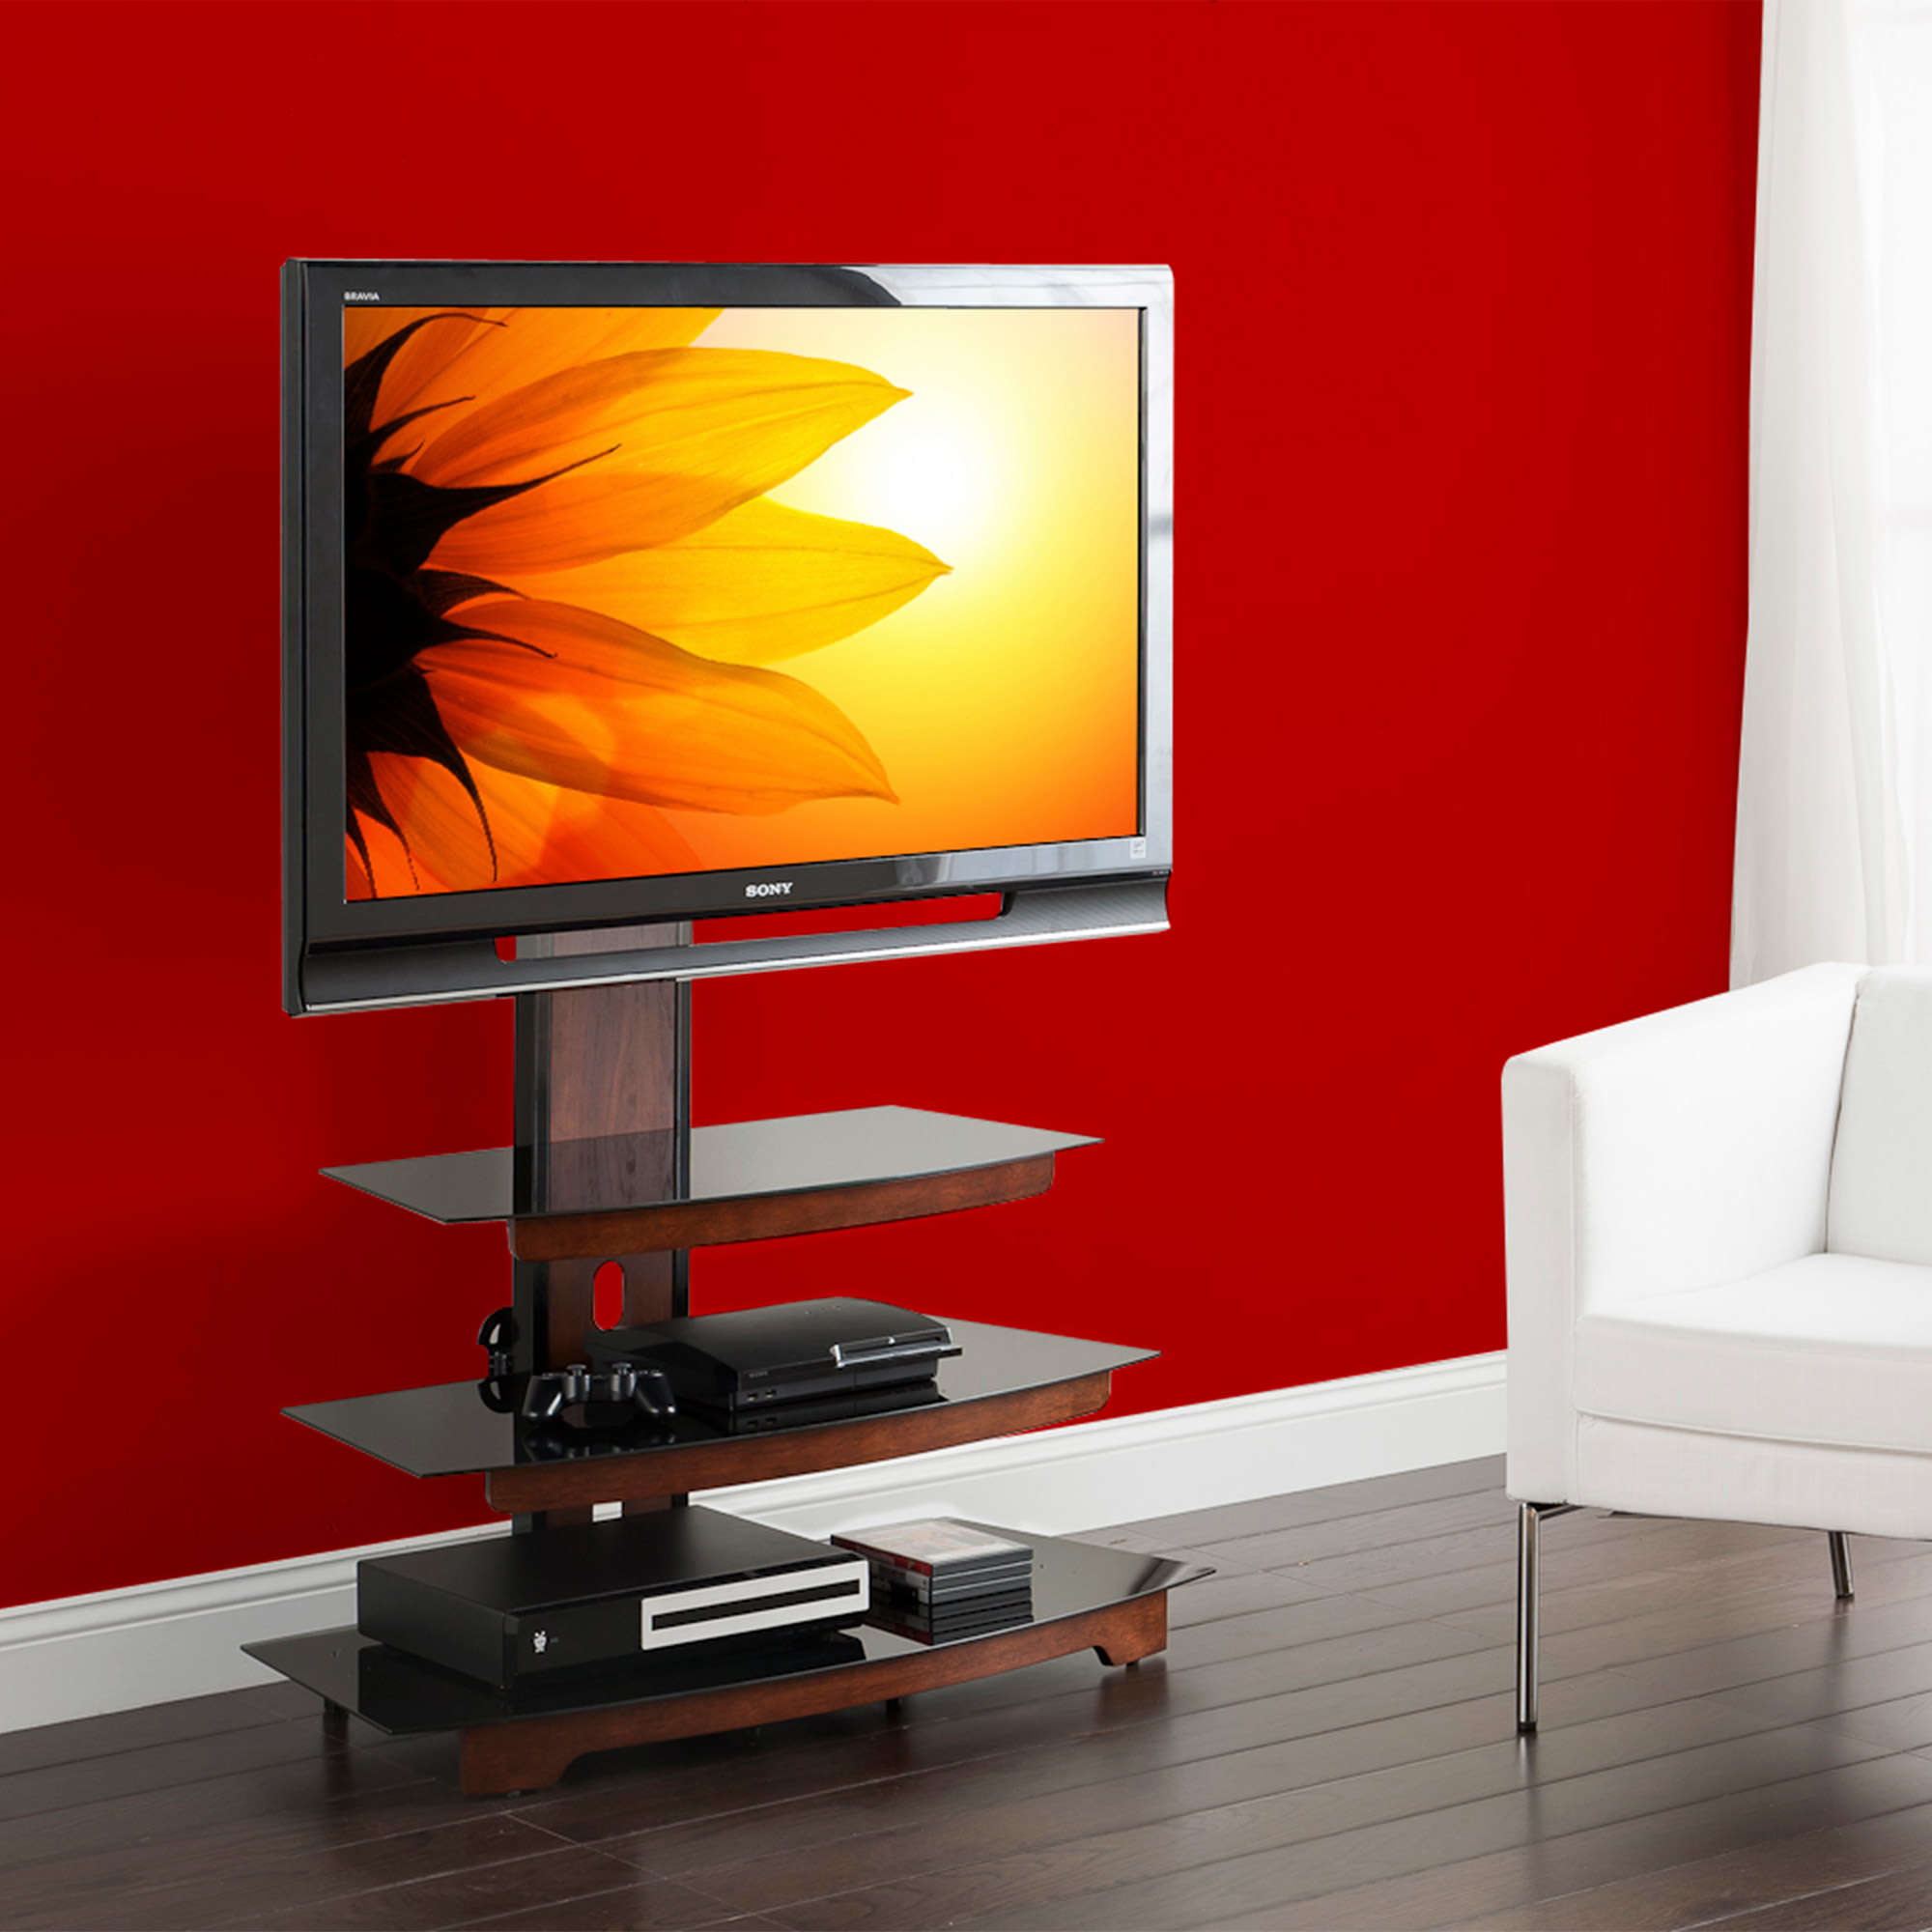 whalen 3 tier television stand for tvs up to 50 perfect for flat screens black metal with wood trim accent